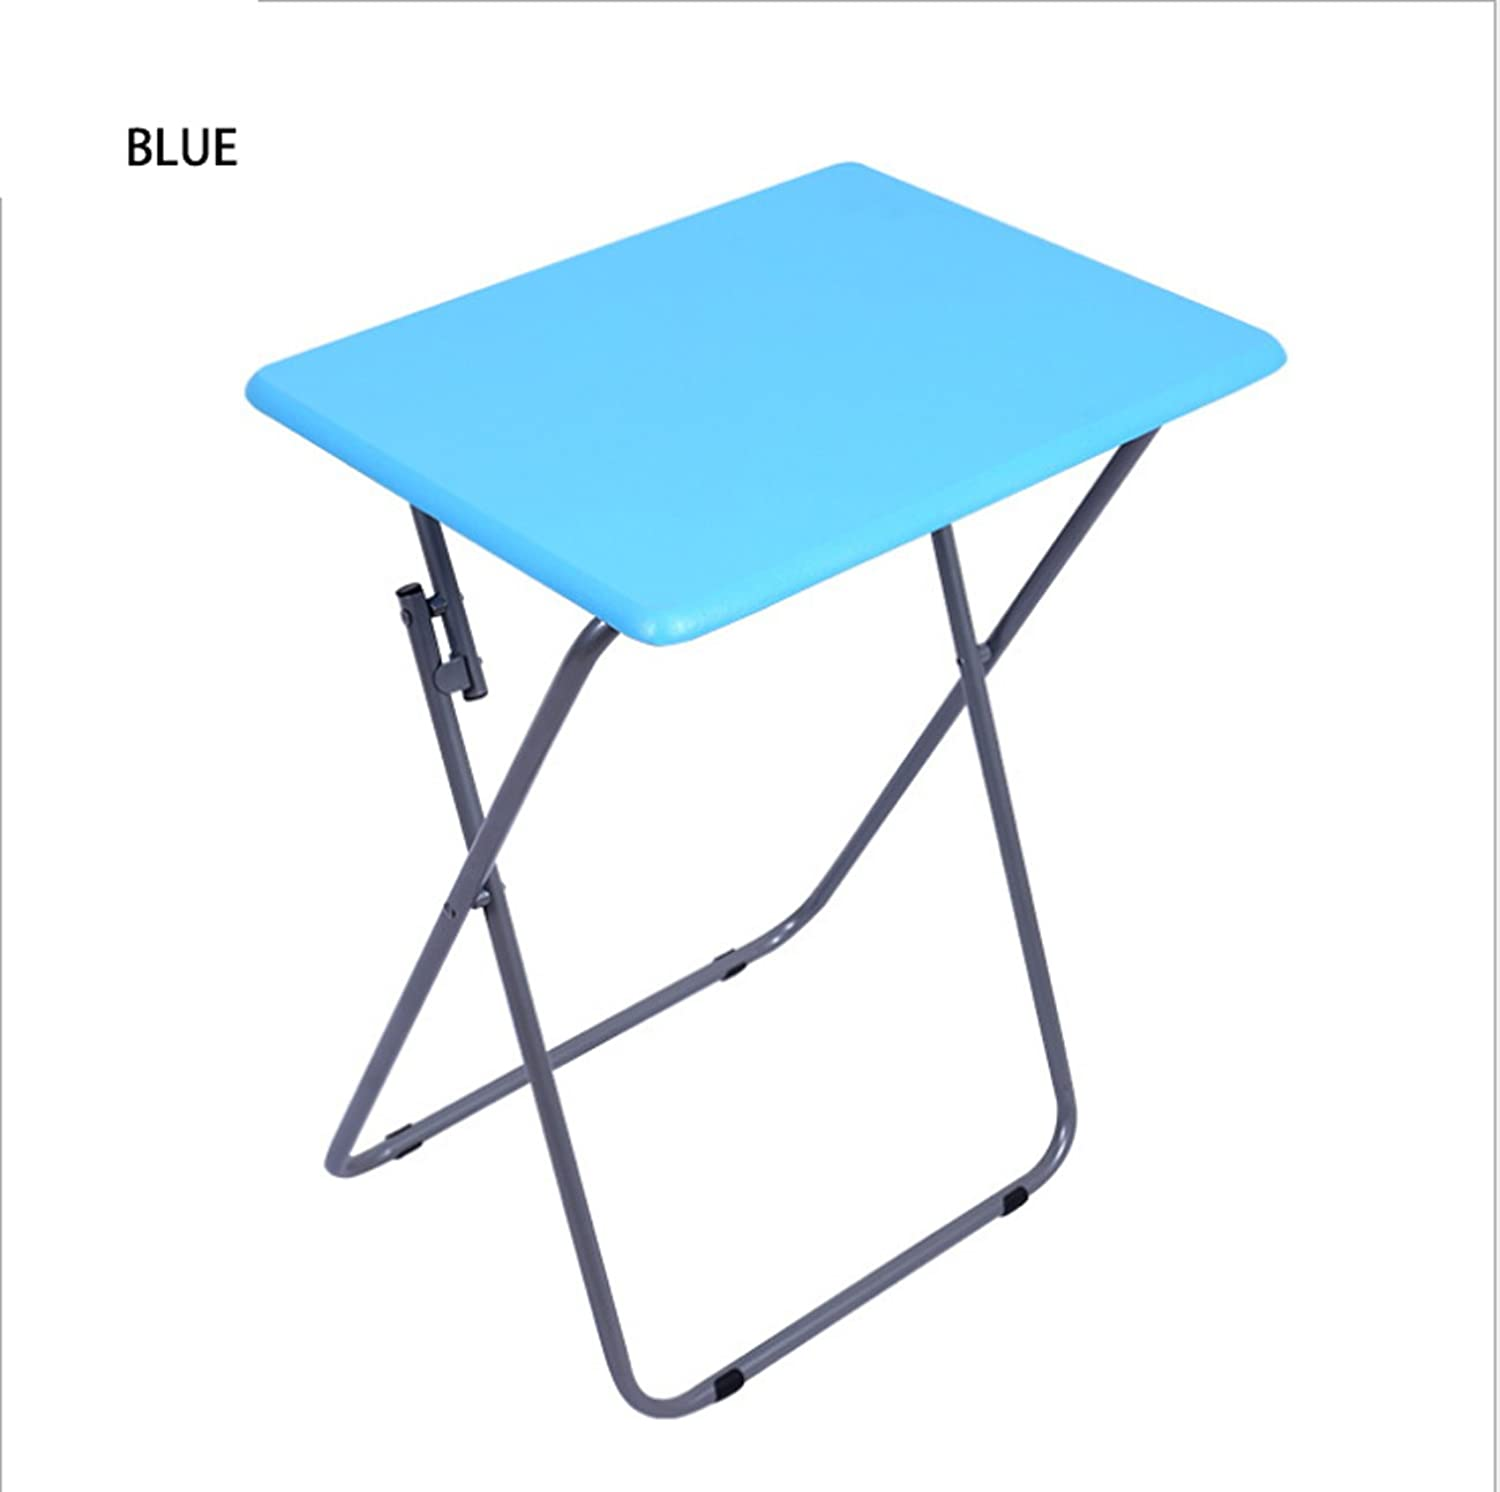 Folding Table Portable Lightweight Camping Table Smart Dining Table for Indoor&Outdoor Picnic,BBQ,Camping